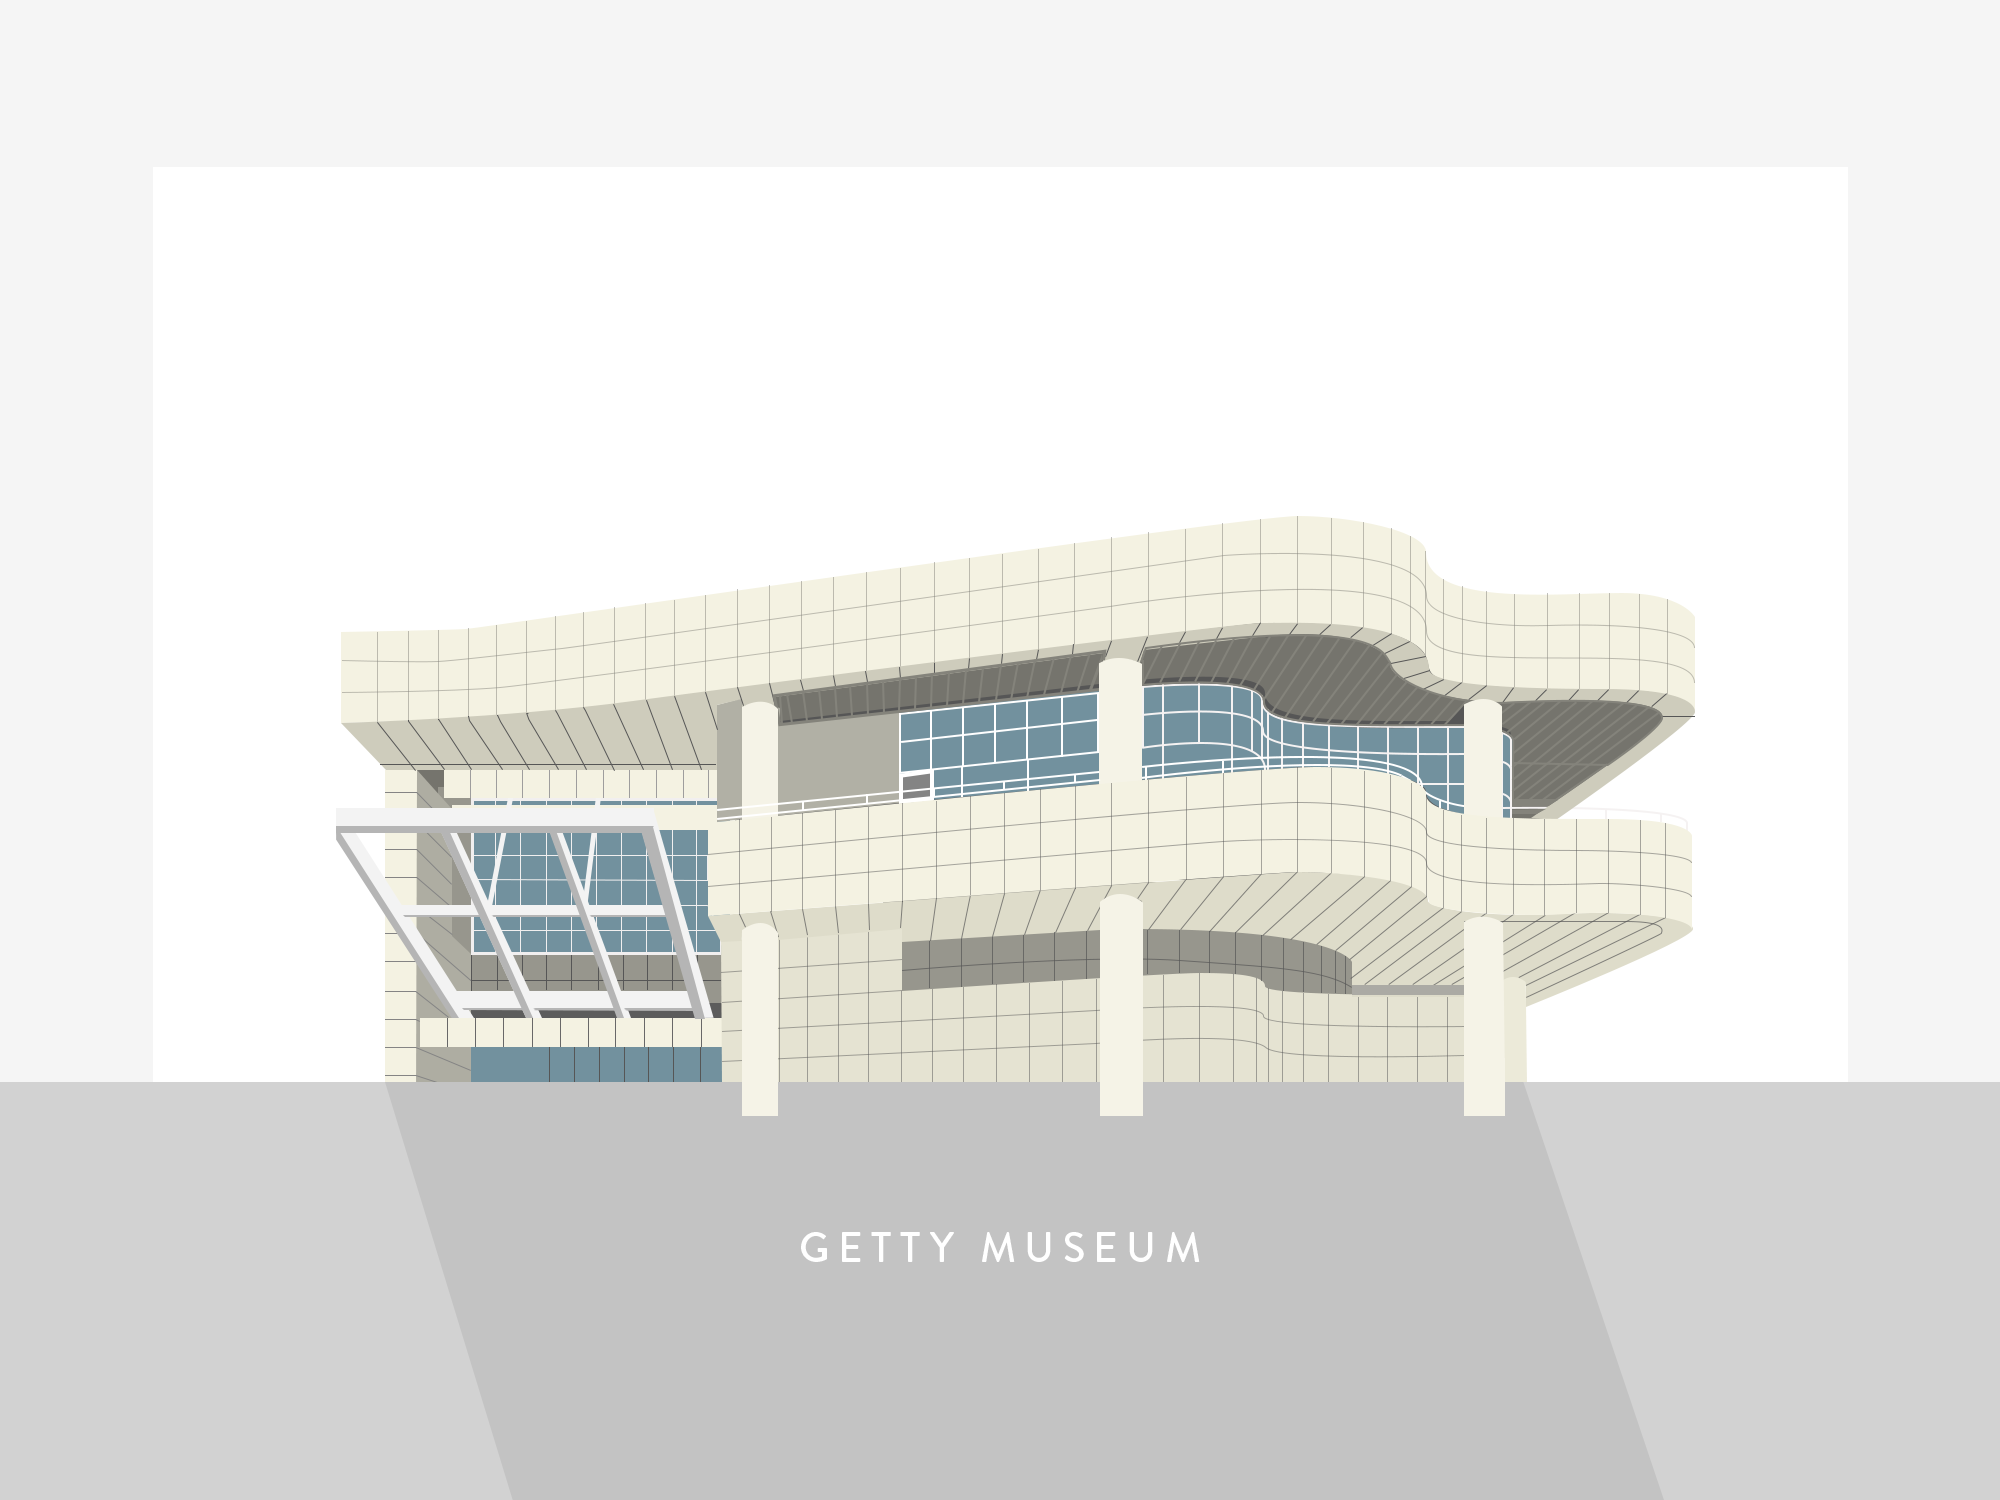 getty center.png